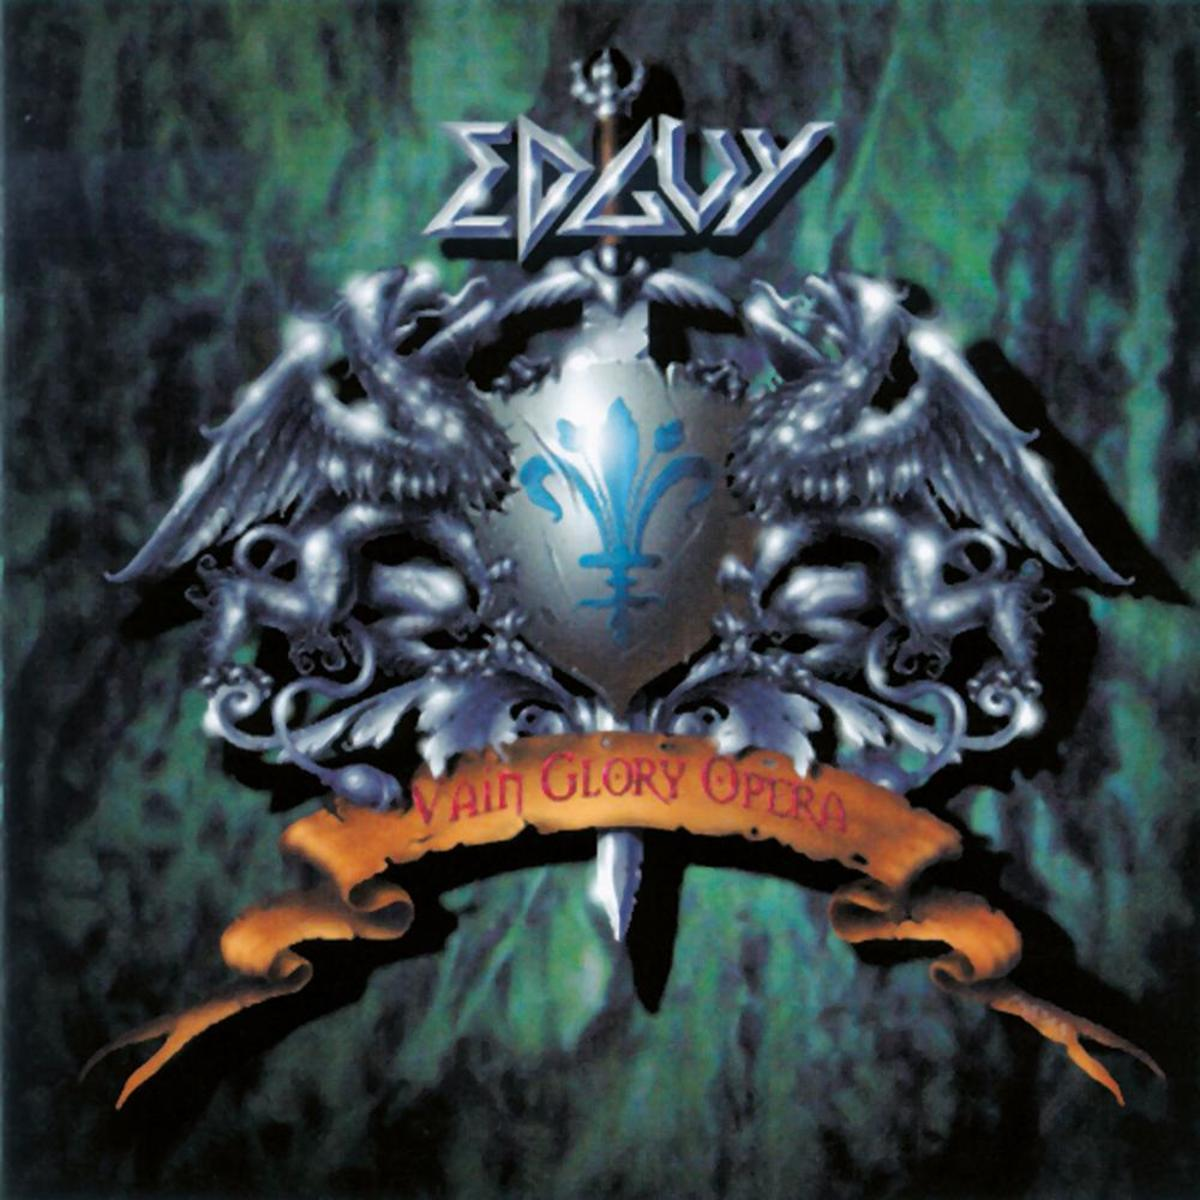 review-of-the-album-vain-glory-opera-by-german-power-metal-band-edguy